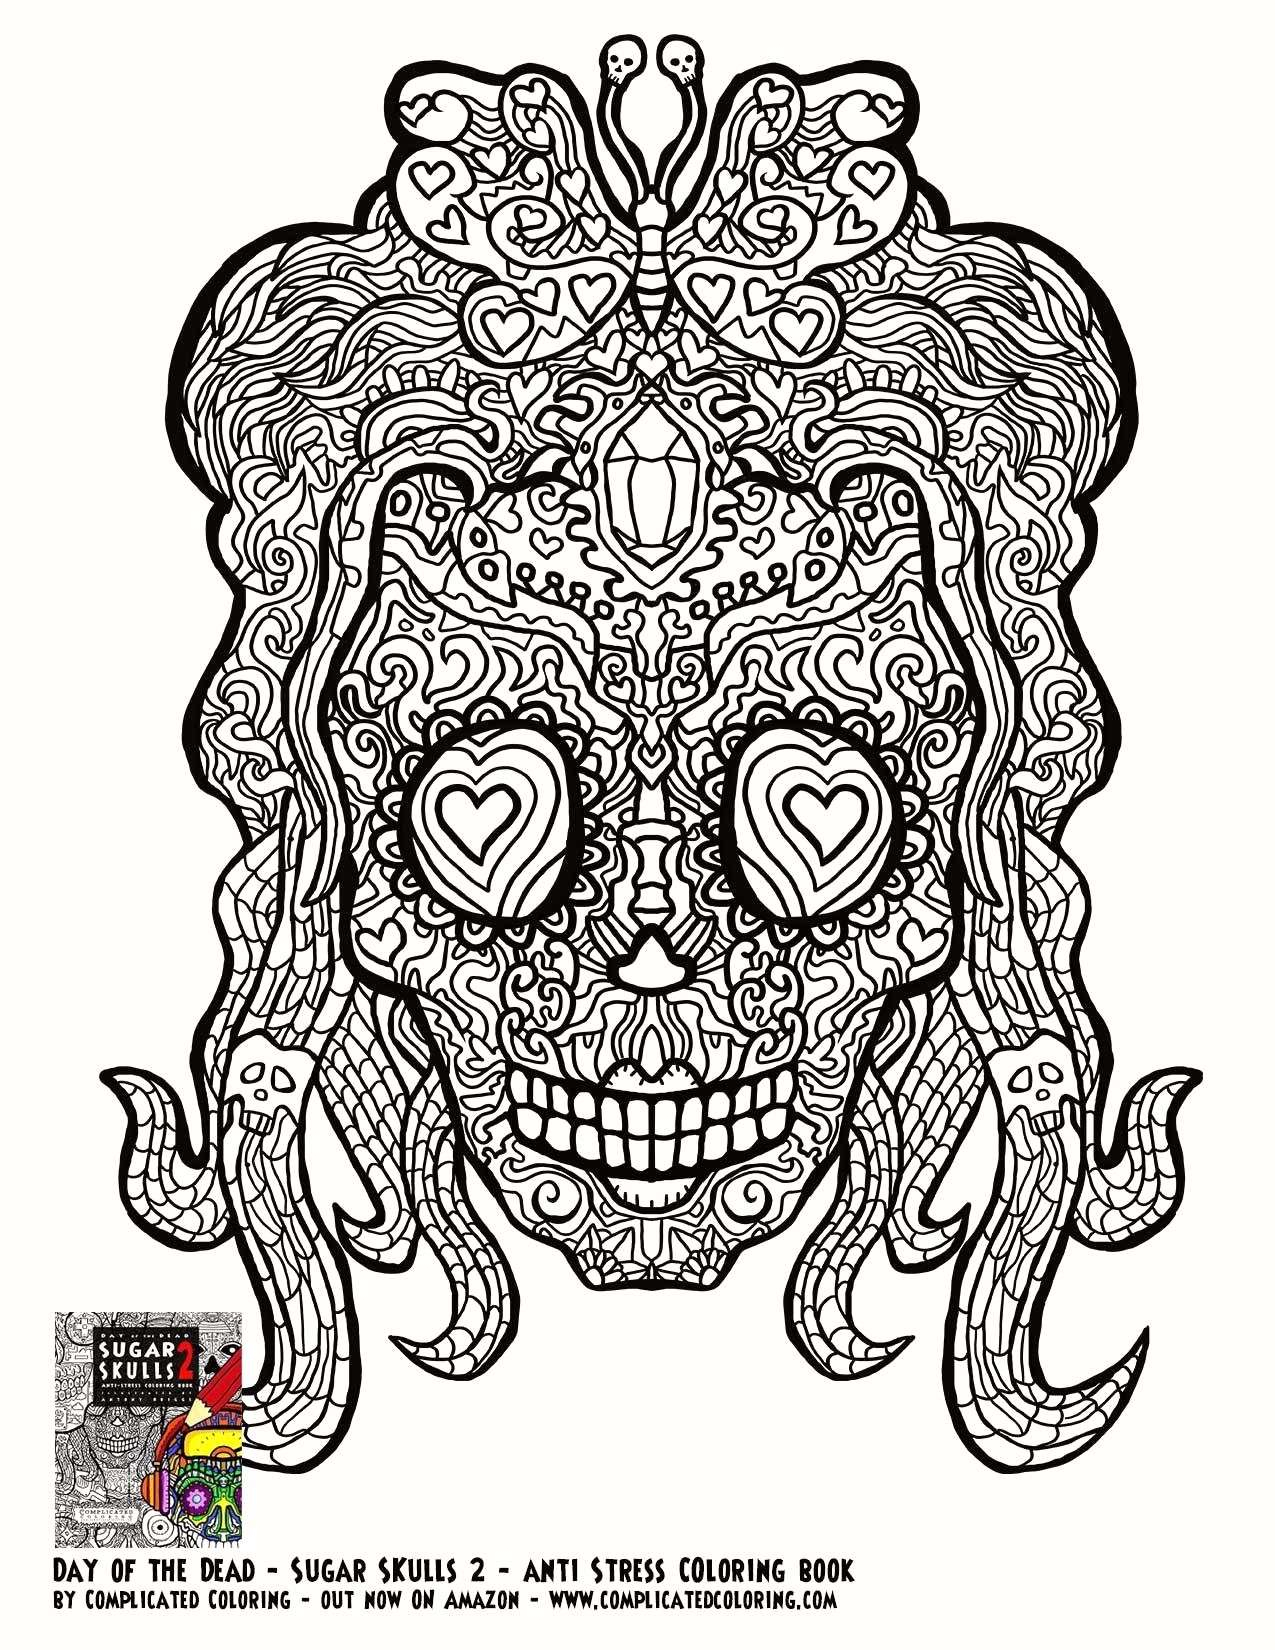 Sugar Skull Girl Coloring Pages  Collection 3h - Save it to your computer